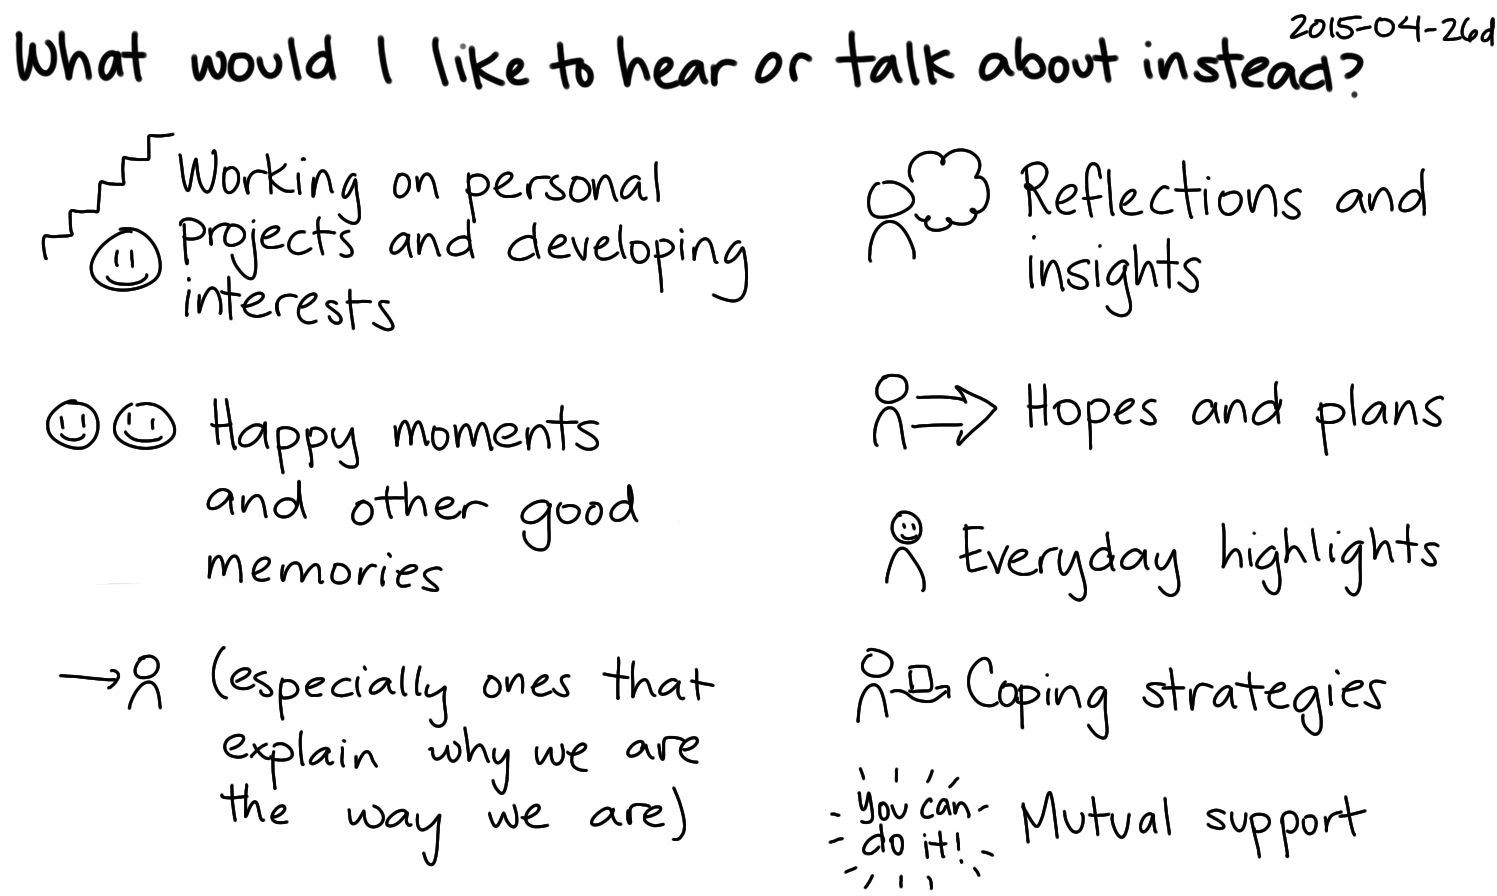 2015-04-26d What would I like to hear or talk about instead -- index card #conversation.png